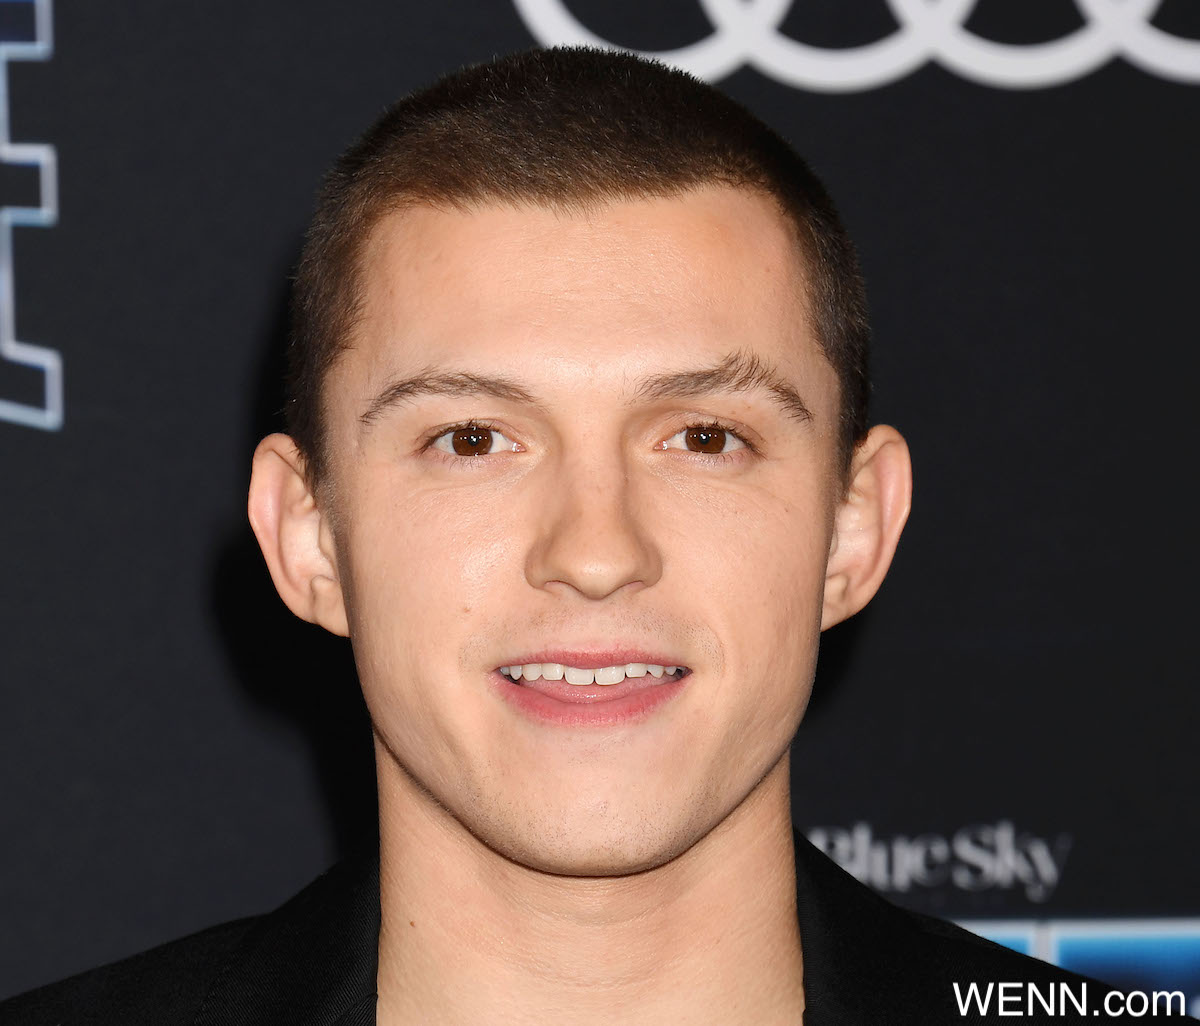 """Tom Holland at the premiere of 20th Century Fox's """"Spies In Disguise"""" at El Capitan Theatre on December 04, 2019 in Los Angeles, USA. Photograph: © Joe Sutter/PacificCoastNews. Los Angeles Office (PCN): +1 310.822.0419 UK Office (Avalon): +44 (0) 20 7421 6000 sales@pacificcoastnews.com Where: Hollywood, California, United States When: 04 Dec 2019 Credit: WENN/Avalon **WENN/Avalon**"""